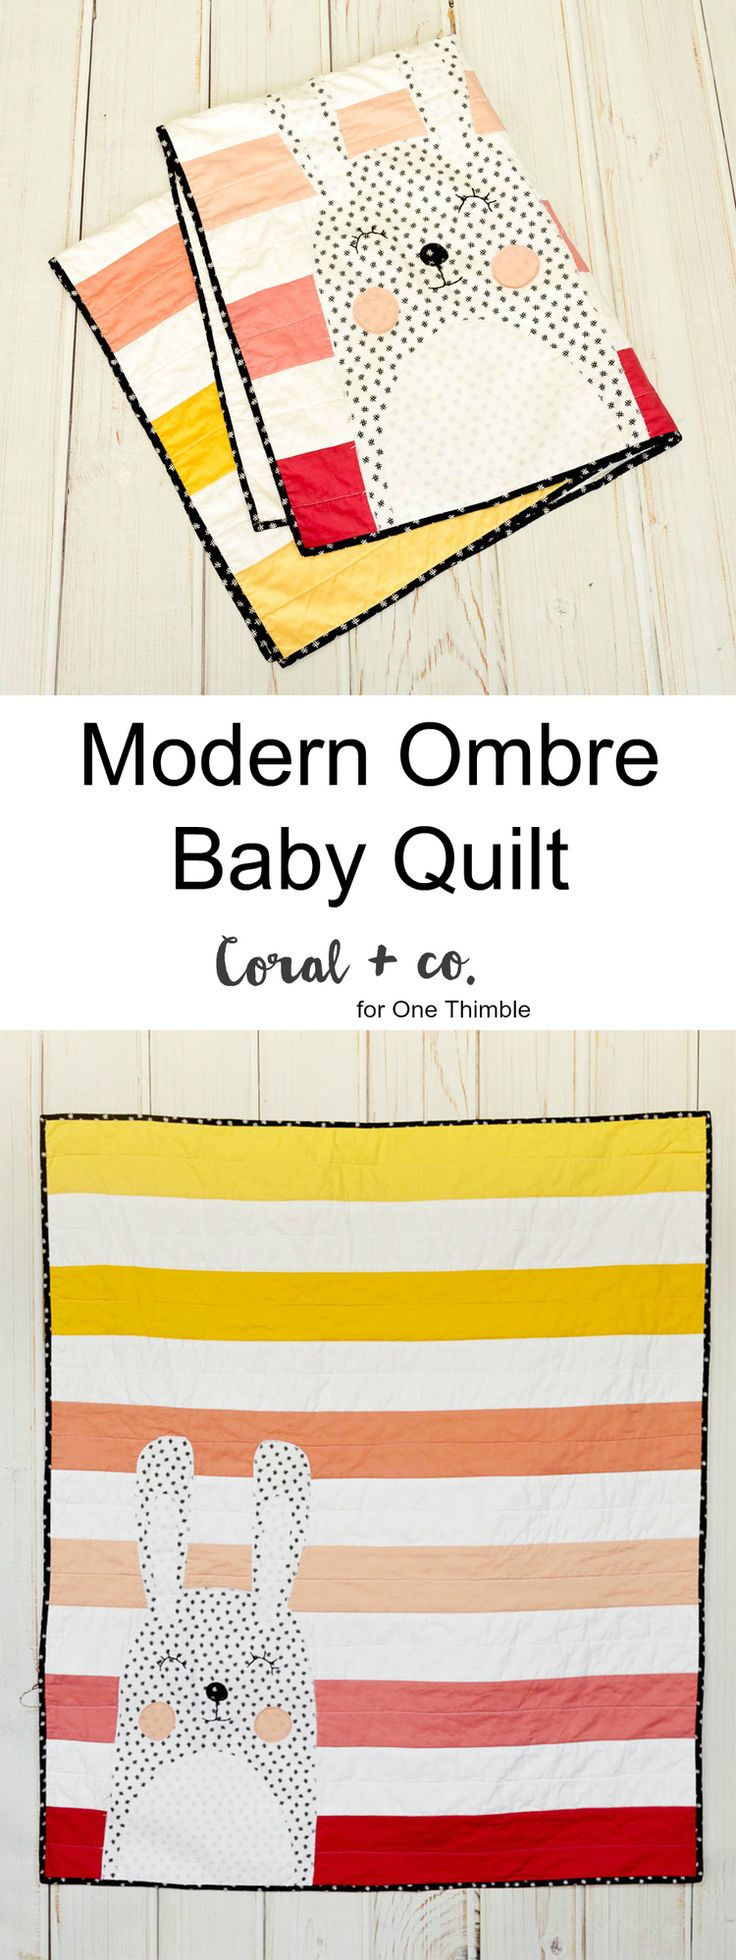 Modern Ombre Baby Quilt + One Thimble Issue 11